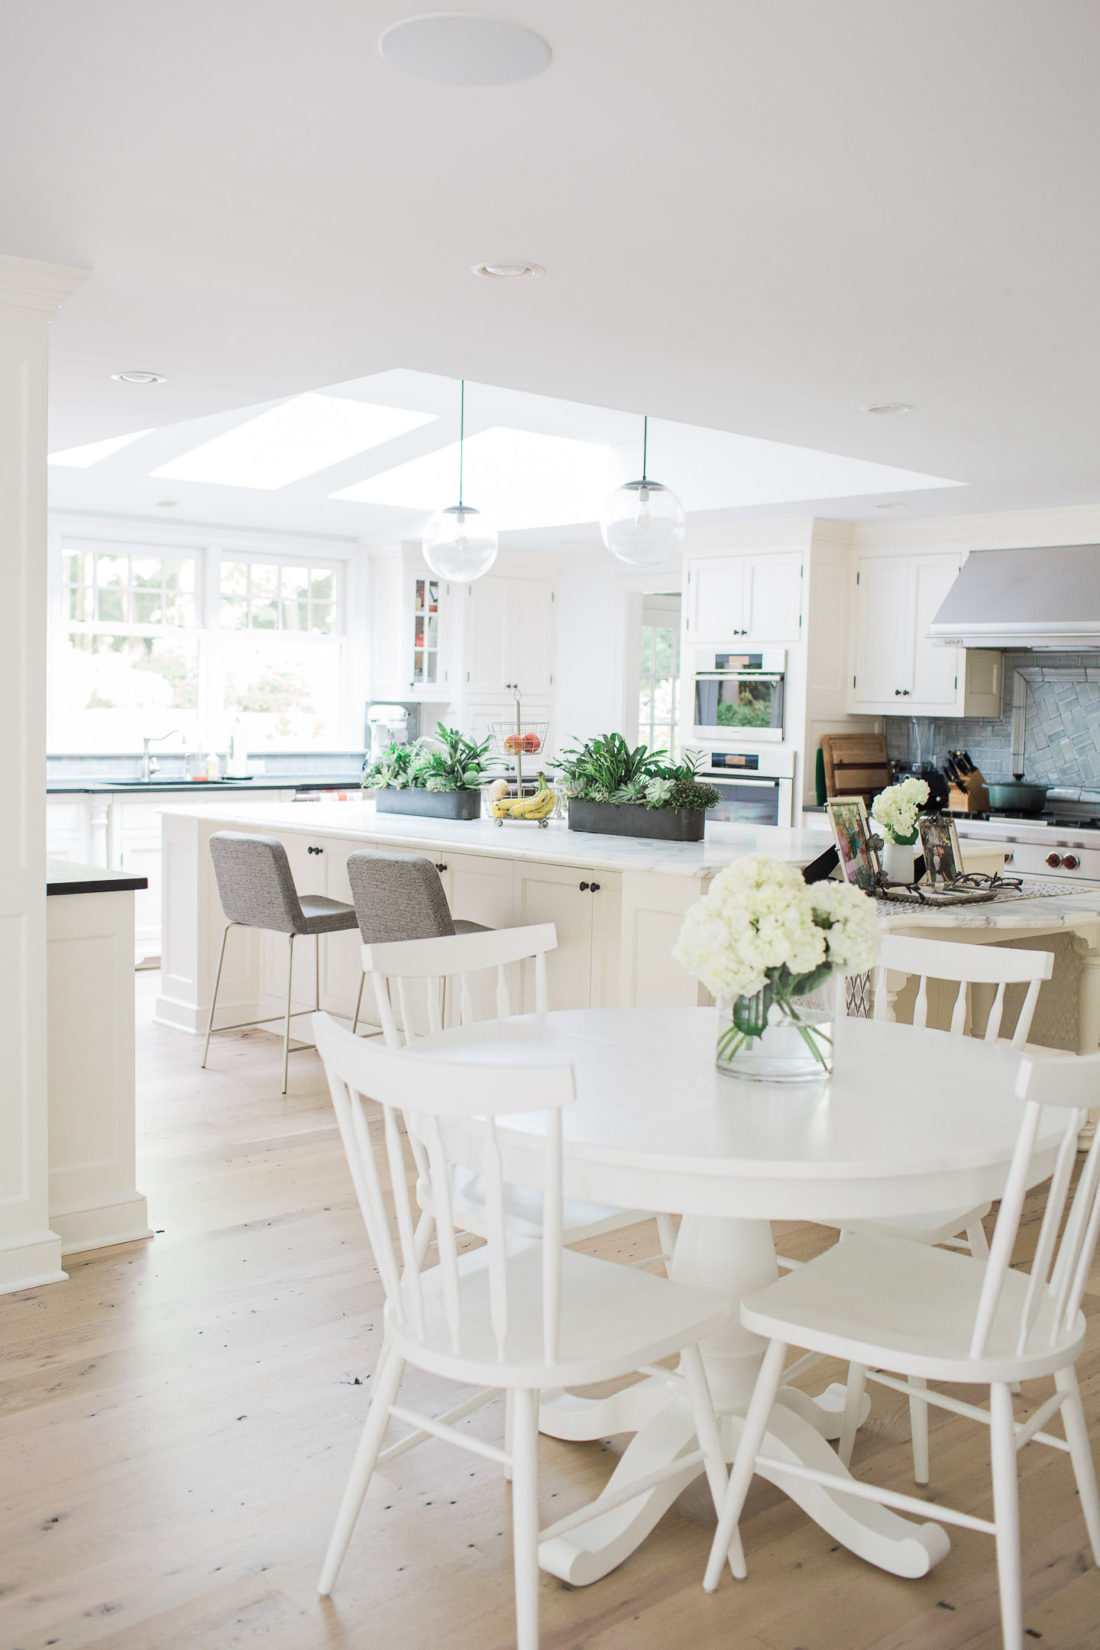 The bright, open, and airy kitchen of lifestyle blogger Eva Amurri Martino in connecticut featuring a big carrara marble island